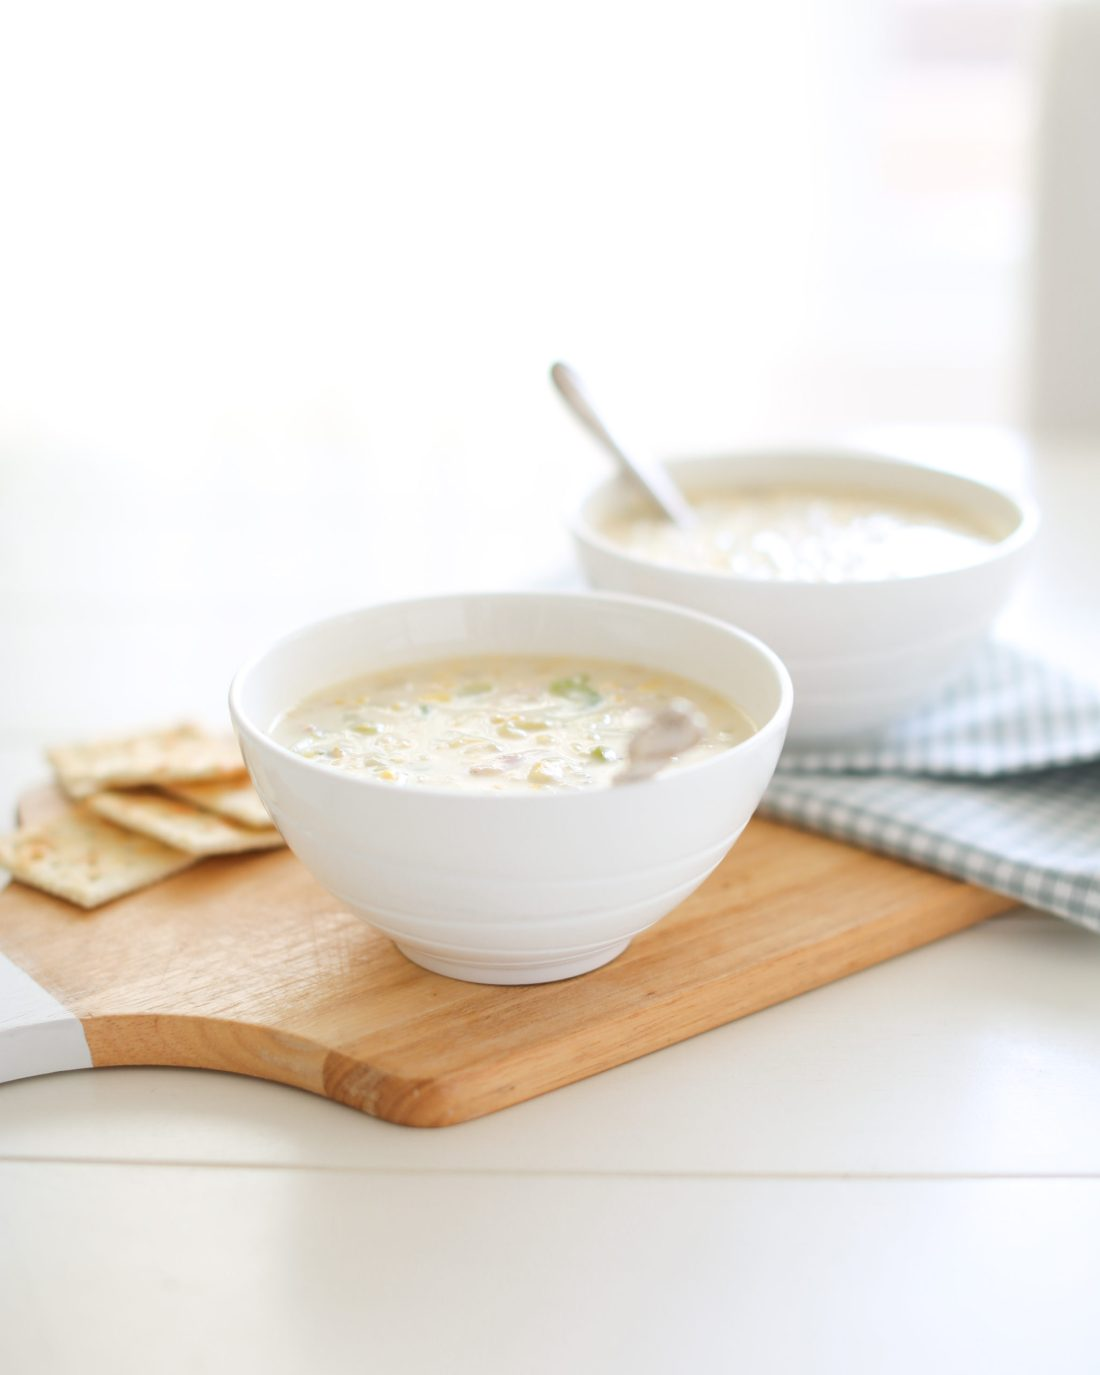 Simple corn chowder that comes together in just 10 minutes!